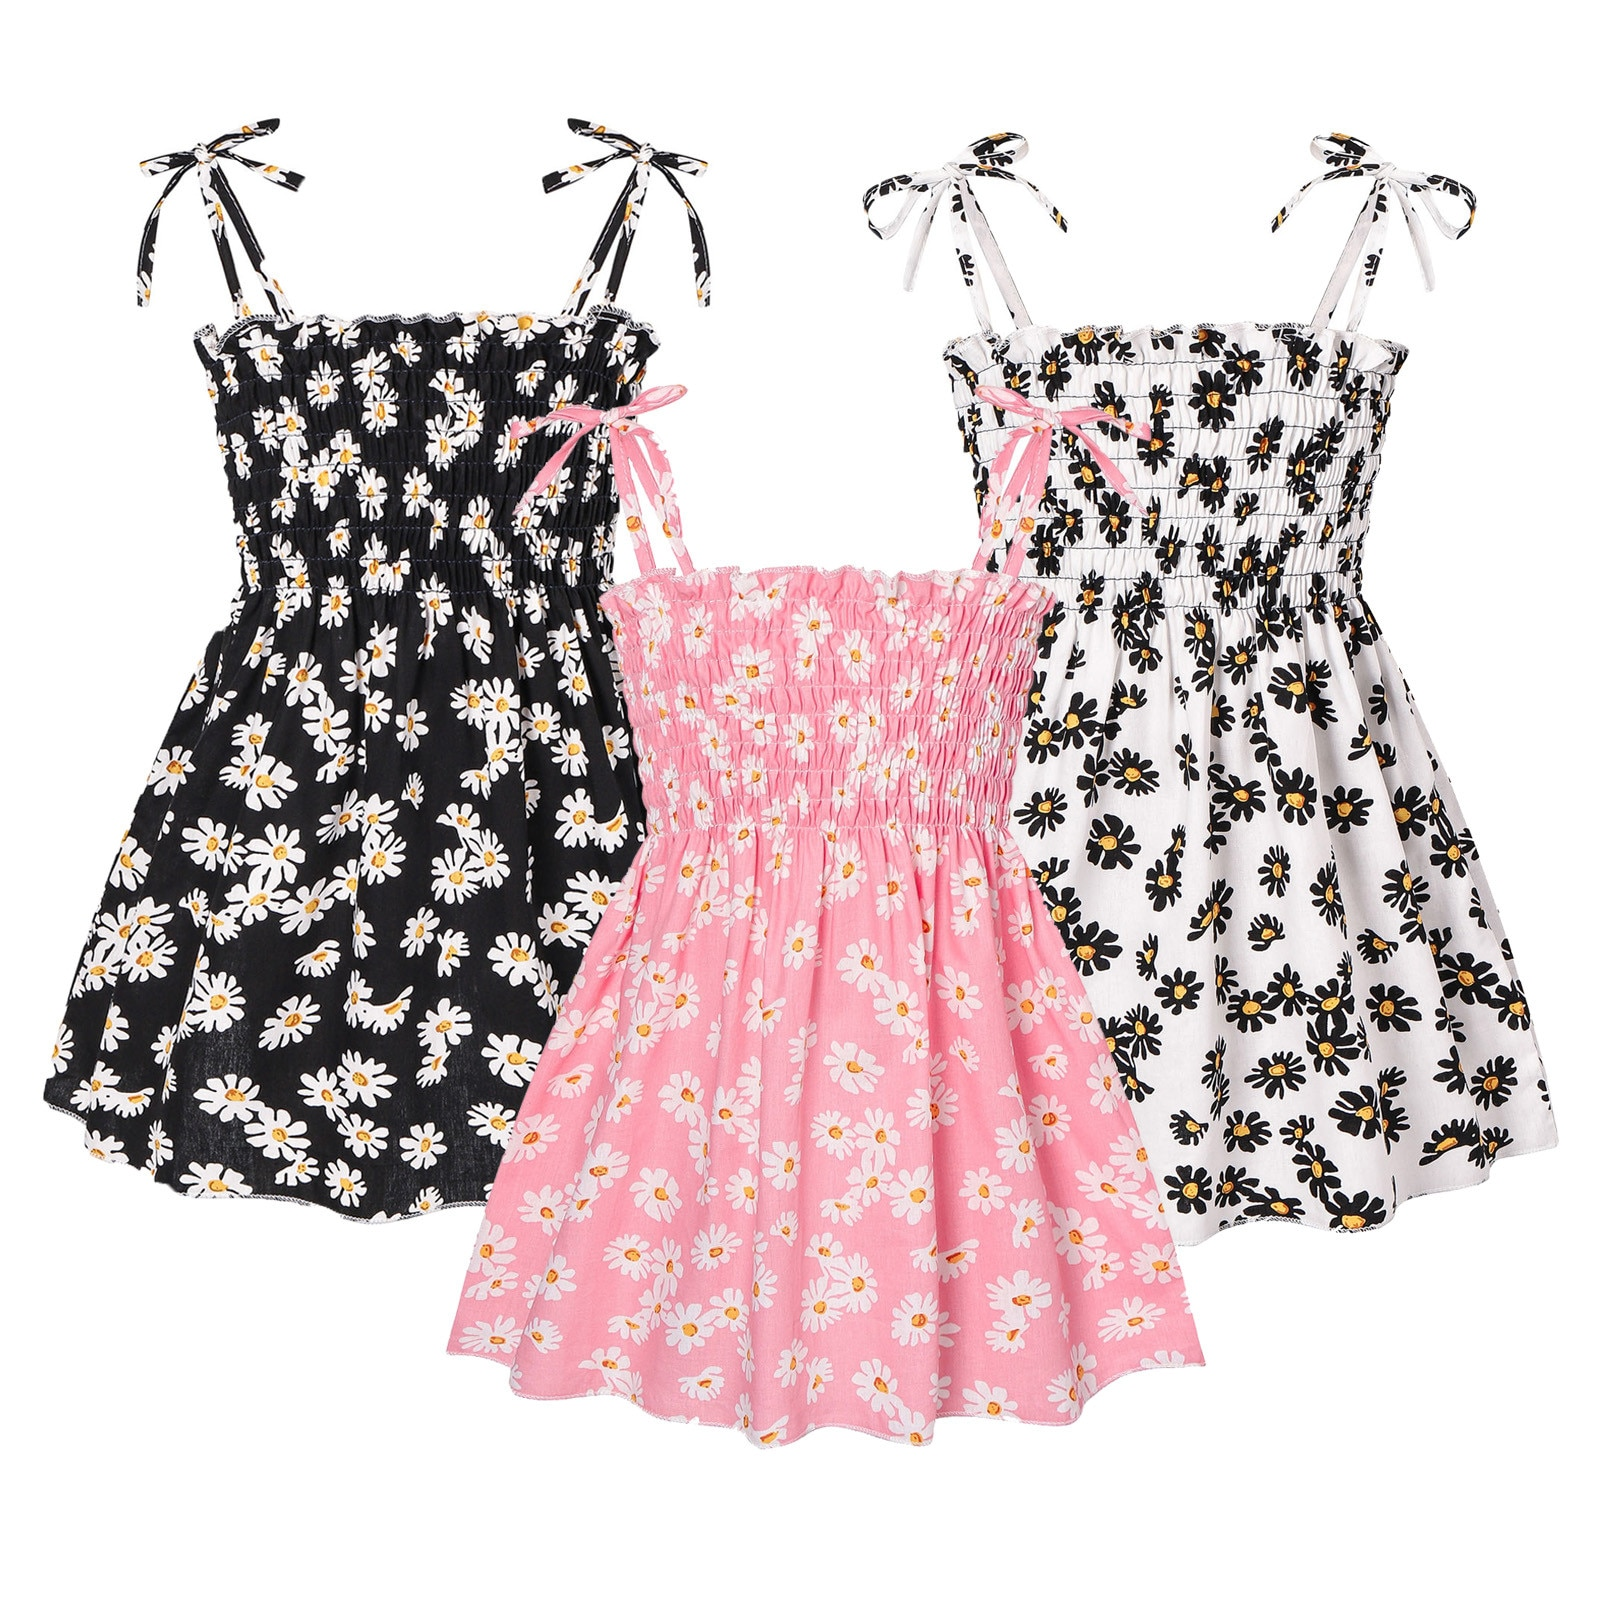 2021Fashion Kids Girl Dress Casual Floral Beach Dress Baby Children Girl Summer Clothes Floral Princ